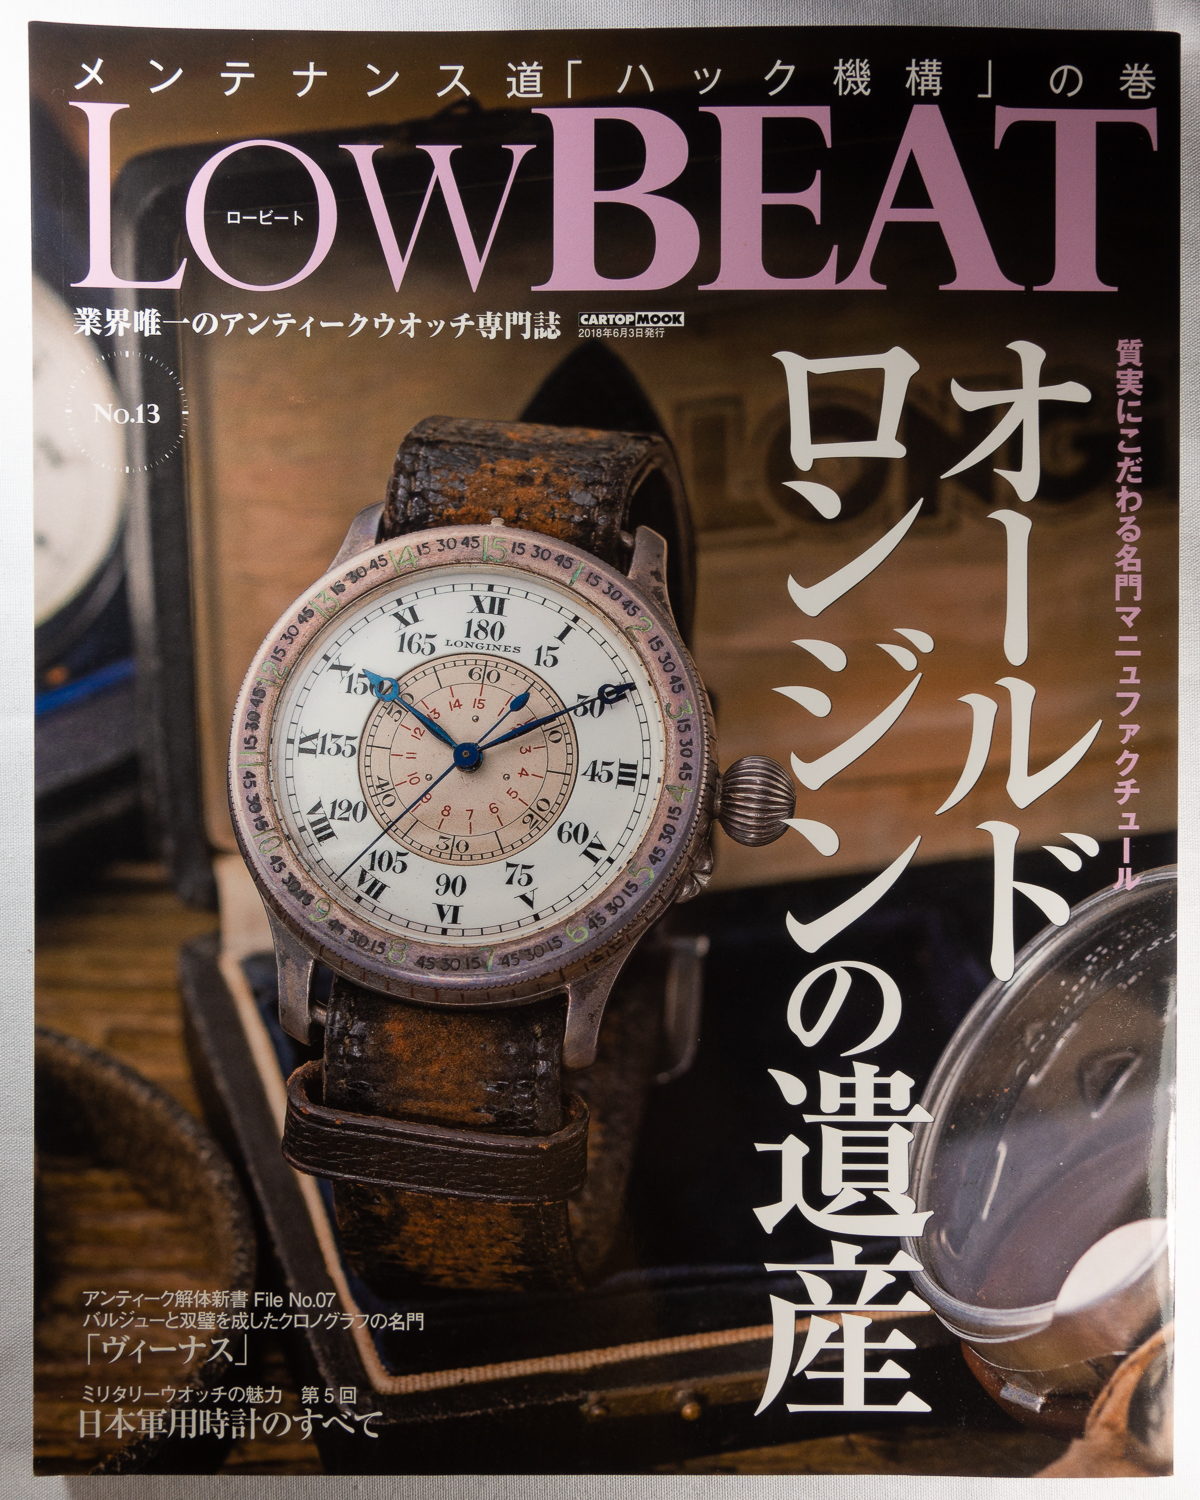 Low BEAT Issue 13